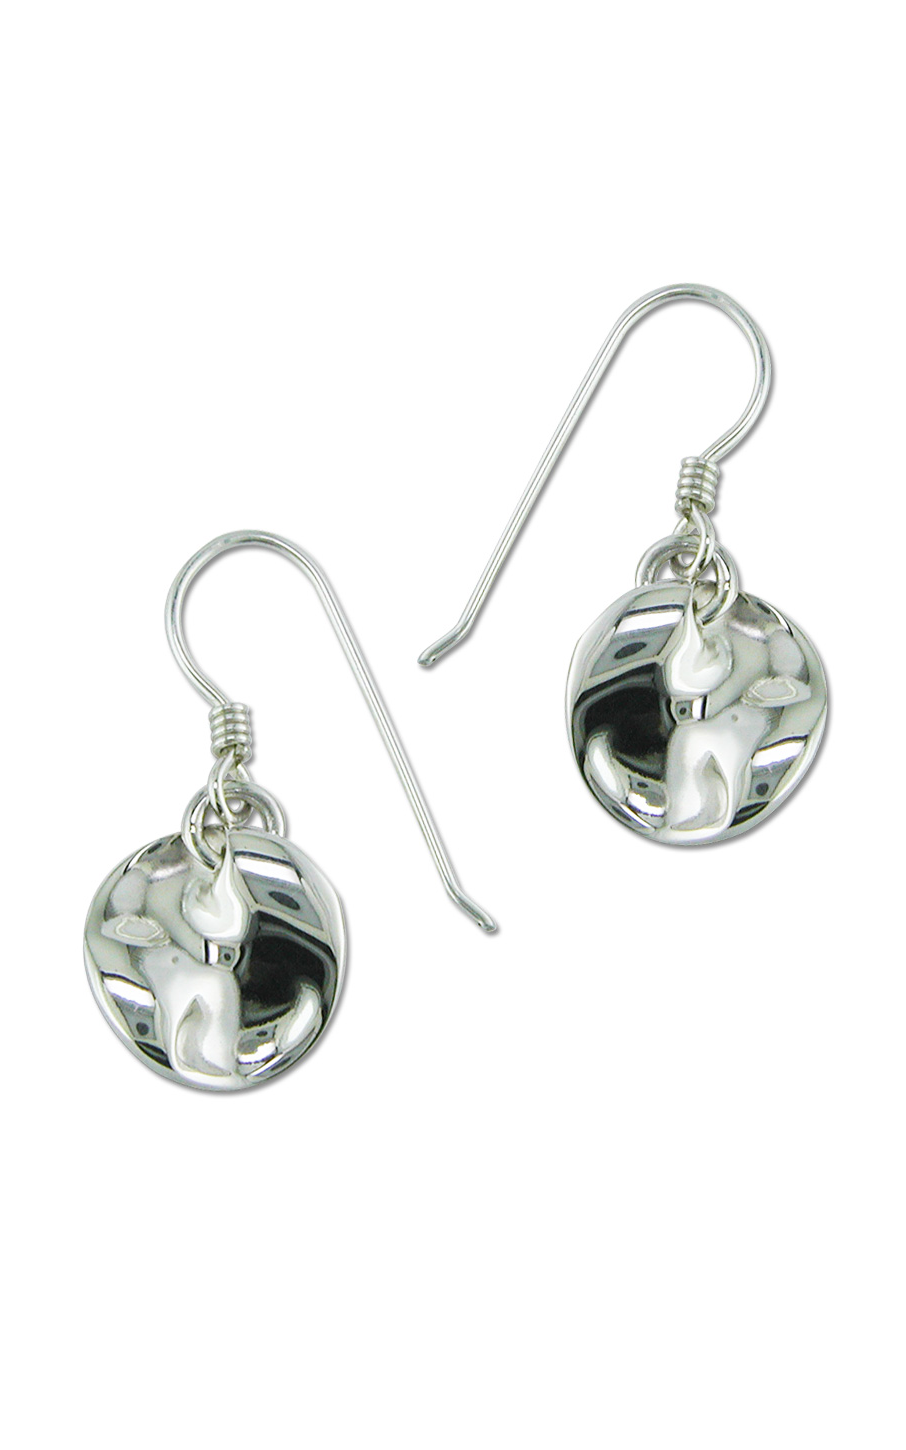 Zina Contemporary Earrings B1316 product image